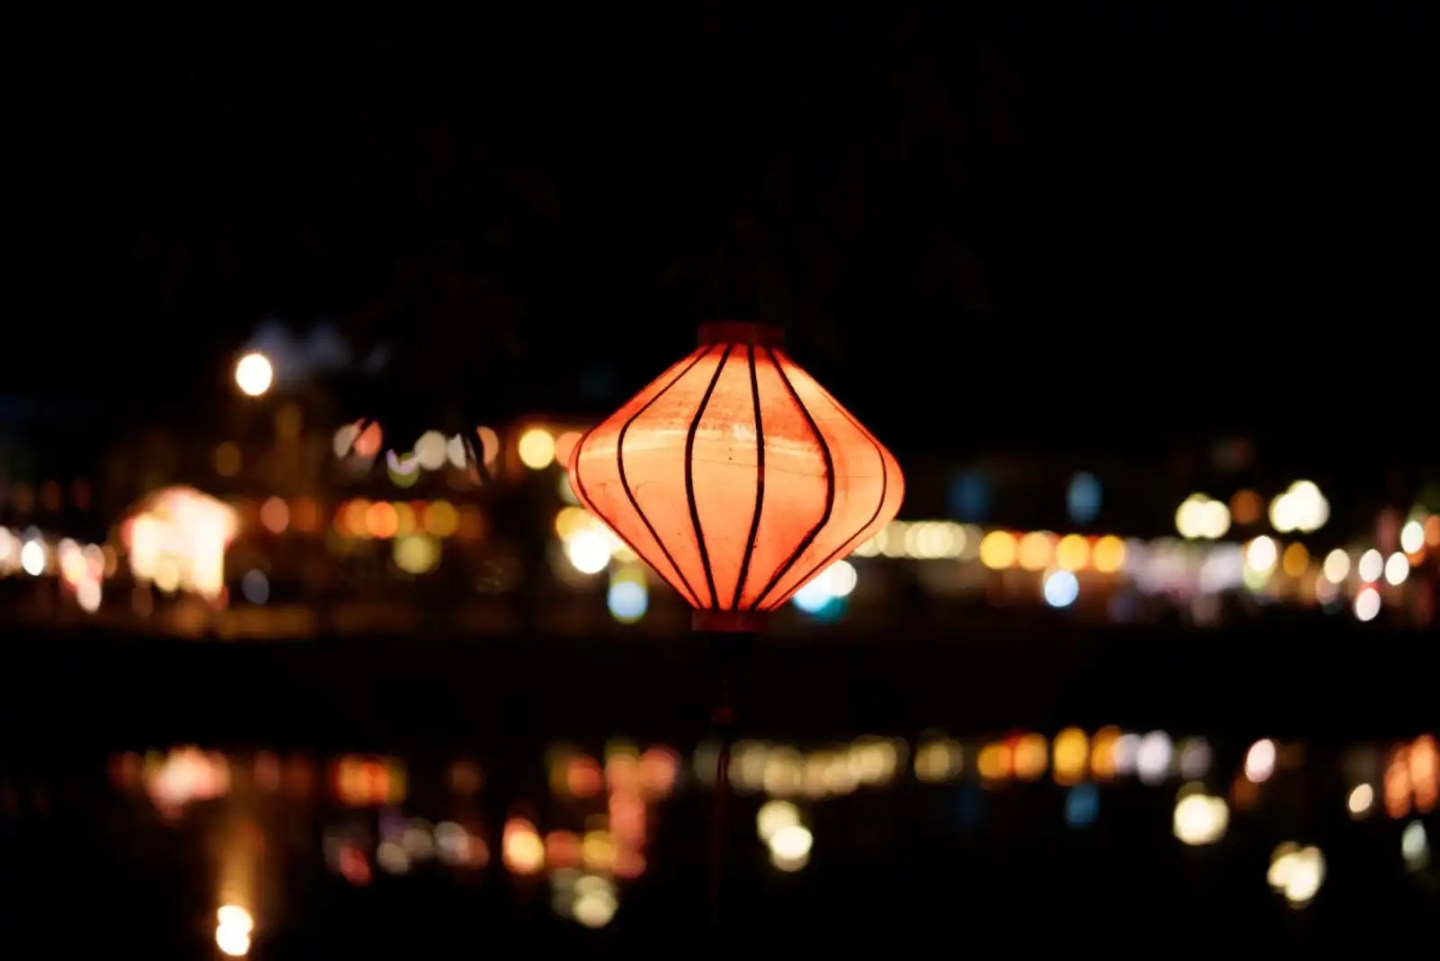 Lanterns at night in Hoi An Vietnam